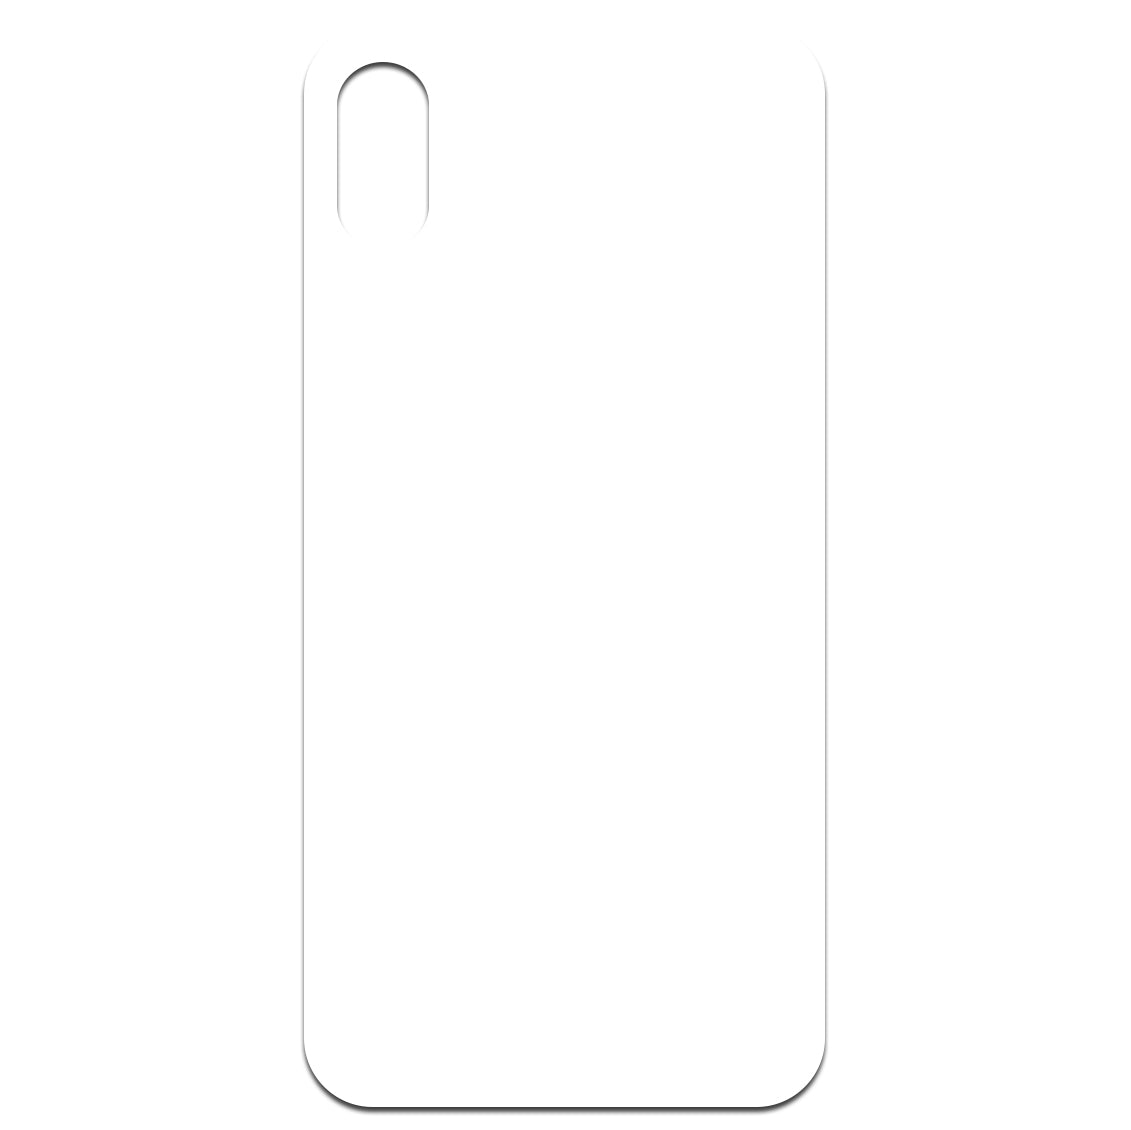 Replacement Adhesive iPhone X Leather Skin